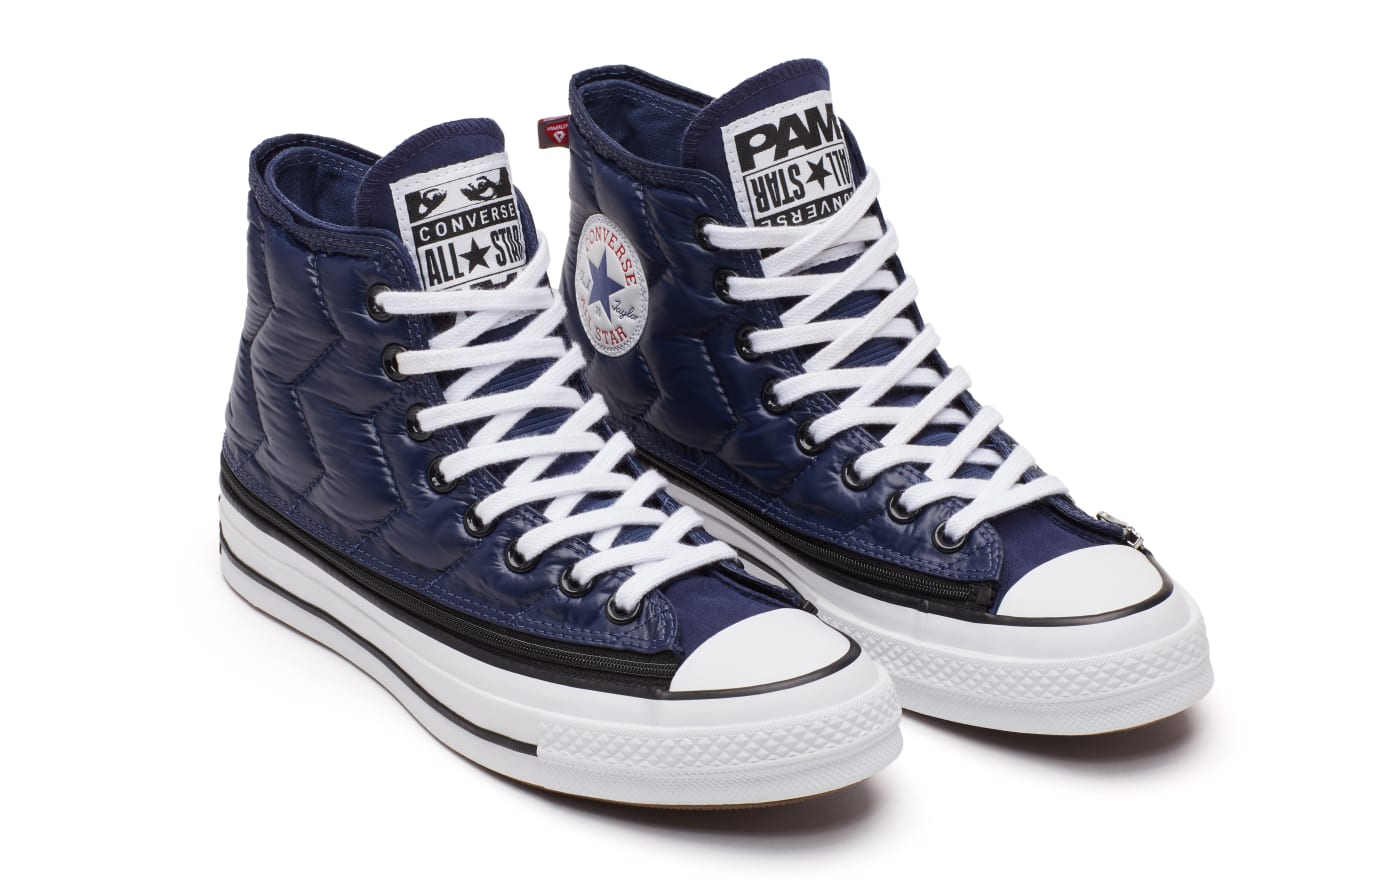 Perks and Mini x Converse Chuck 70 (Pair)